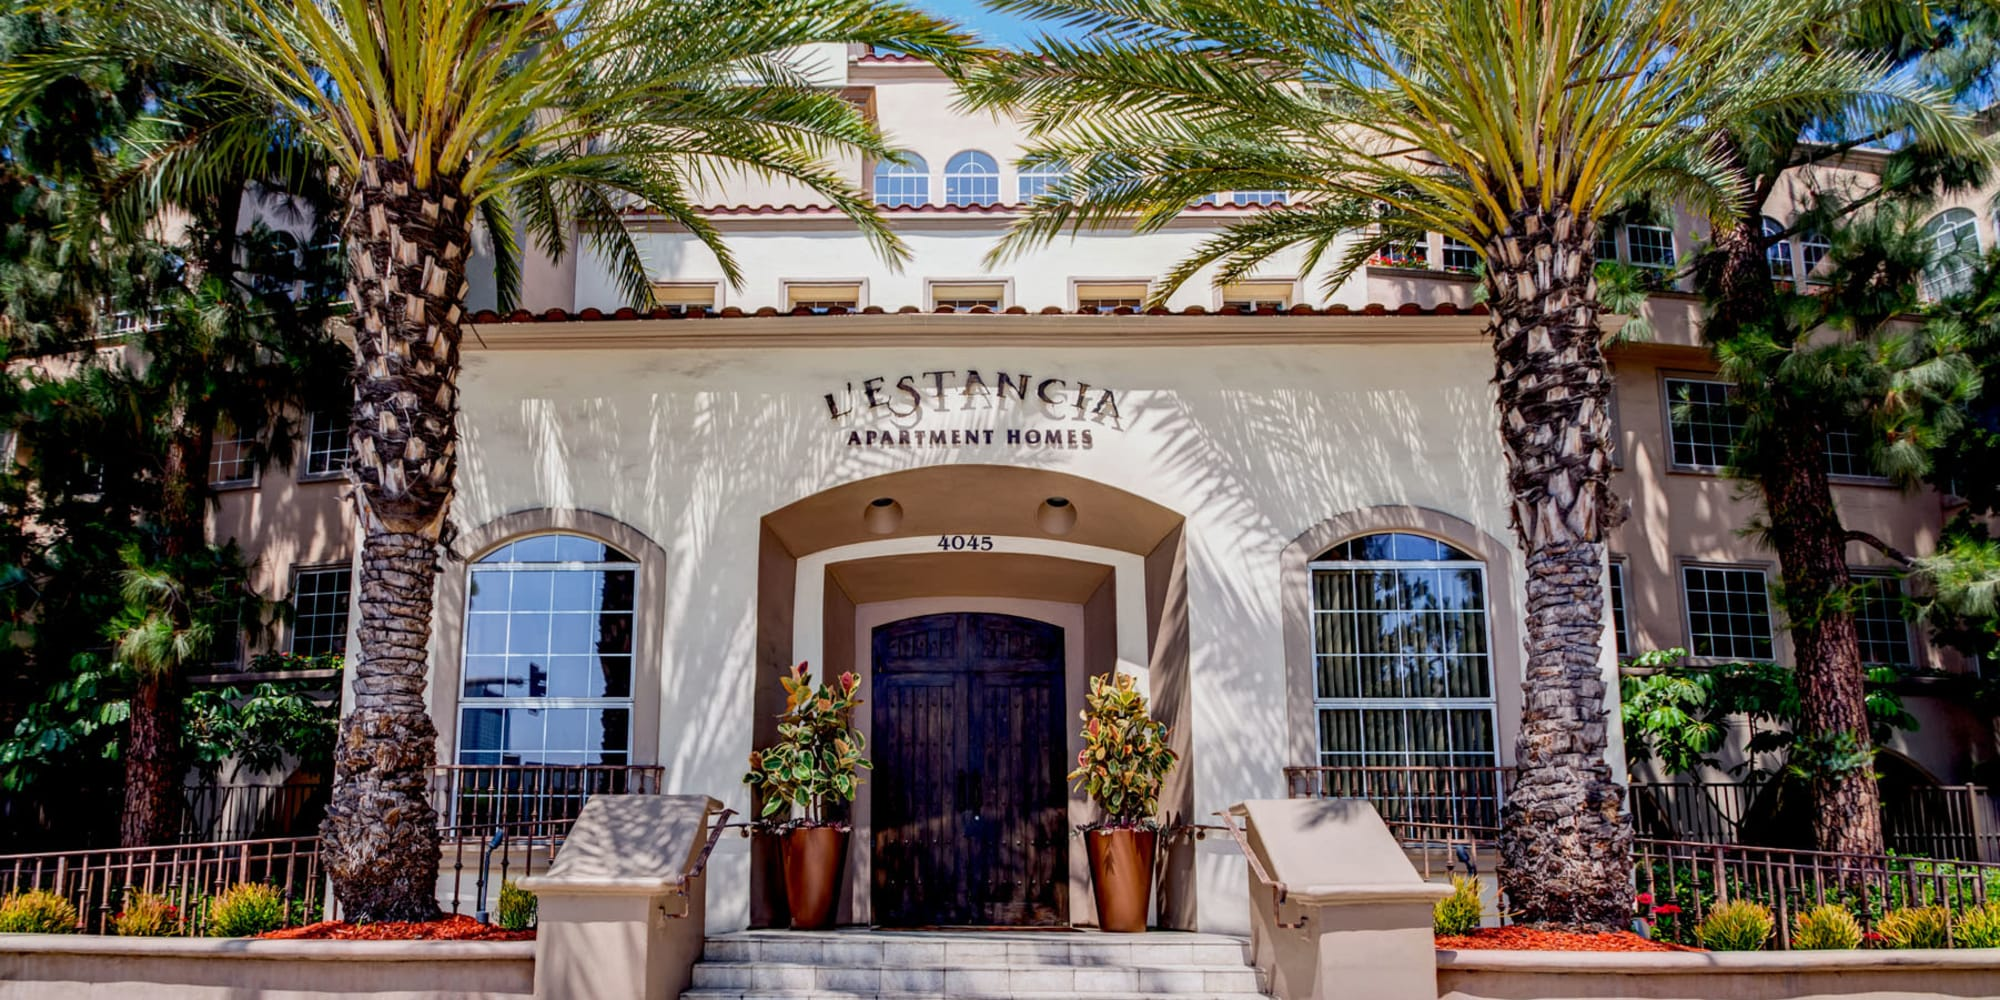 Palm trees and professionally maintained landscaping outside the entrance to L'Estancia in Studio City, California